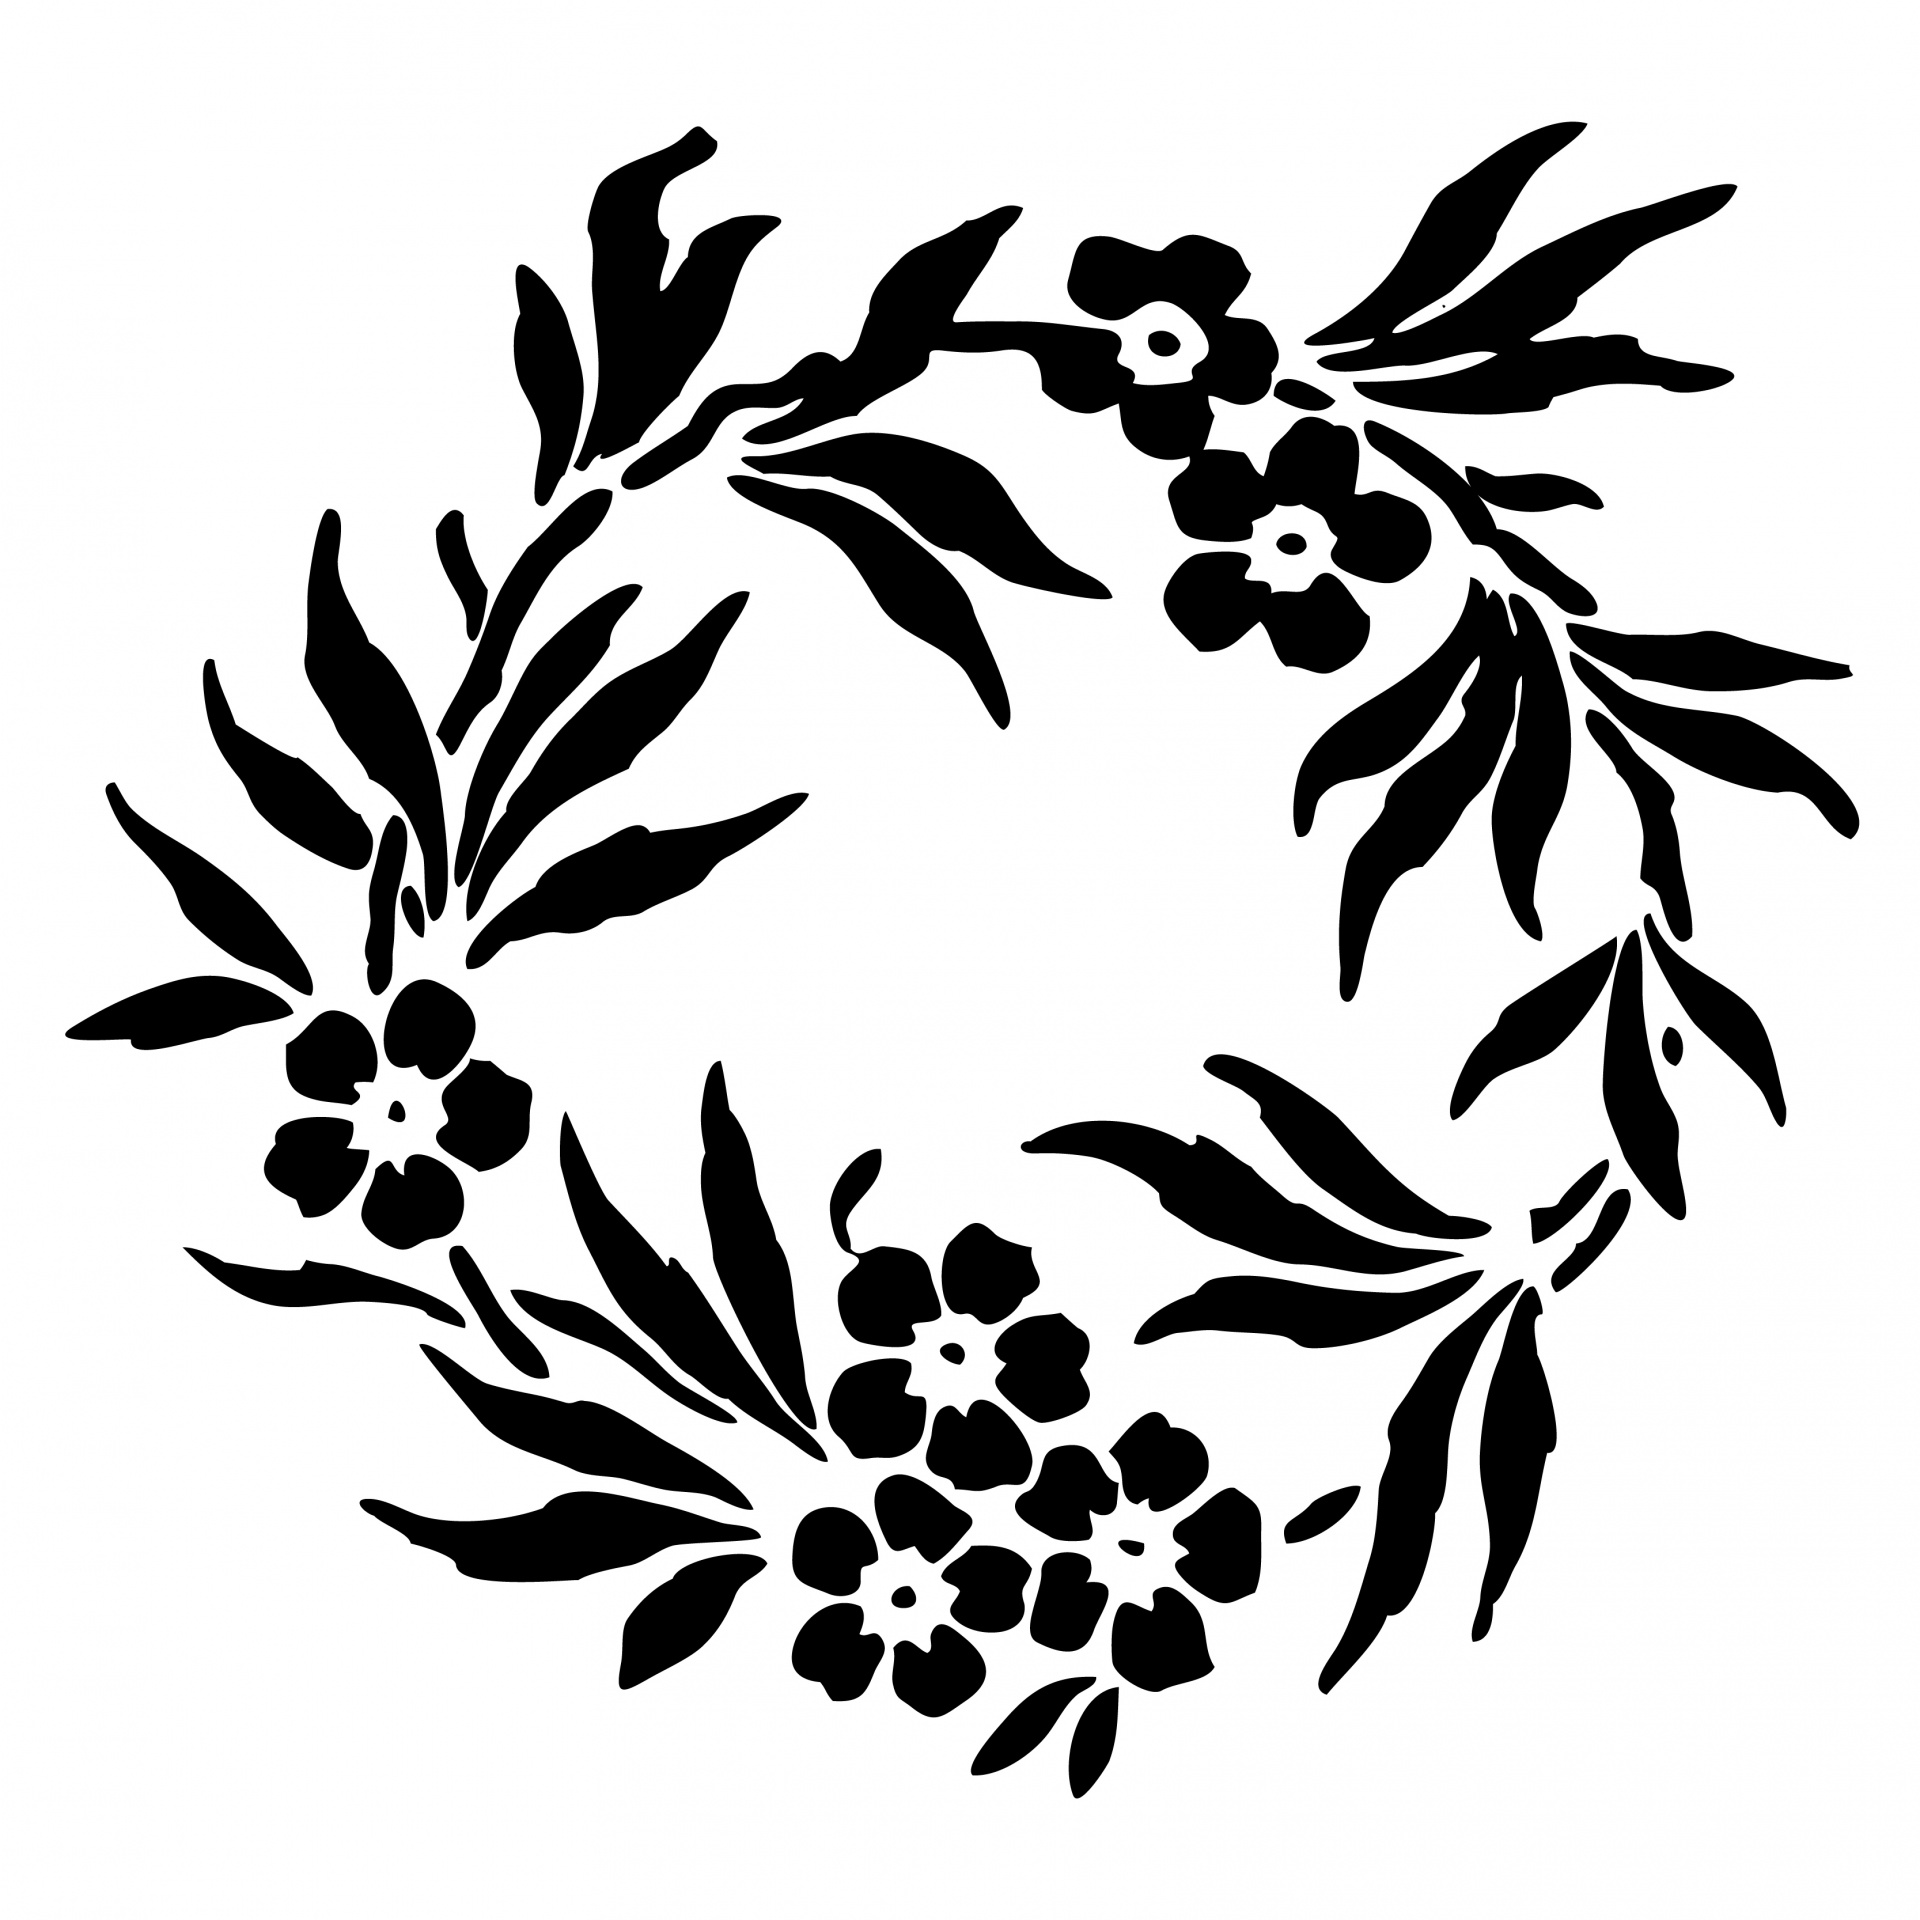 Floral Wreath Clipart Free Stock Photo